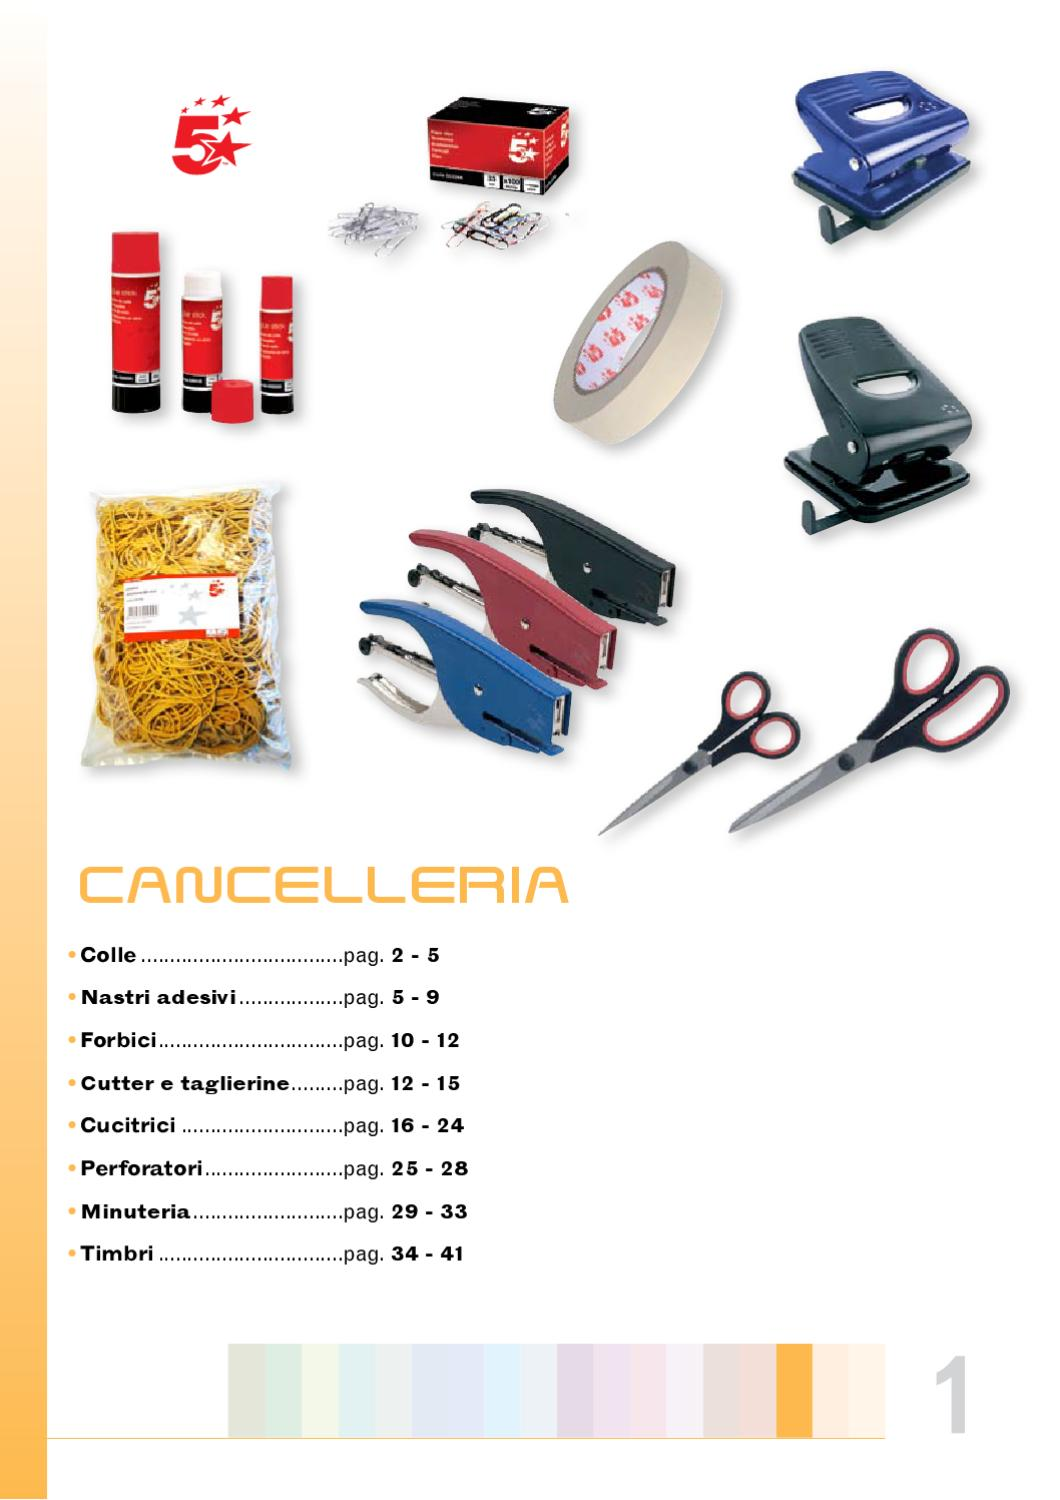 Catalogo Cancelleria Catalogo Cancelleria 2012 Delta Ufficio Srl By Delta